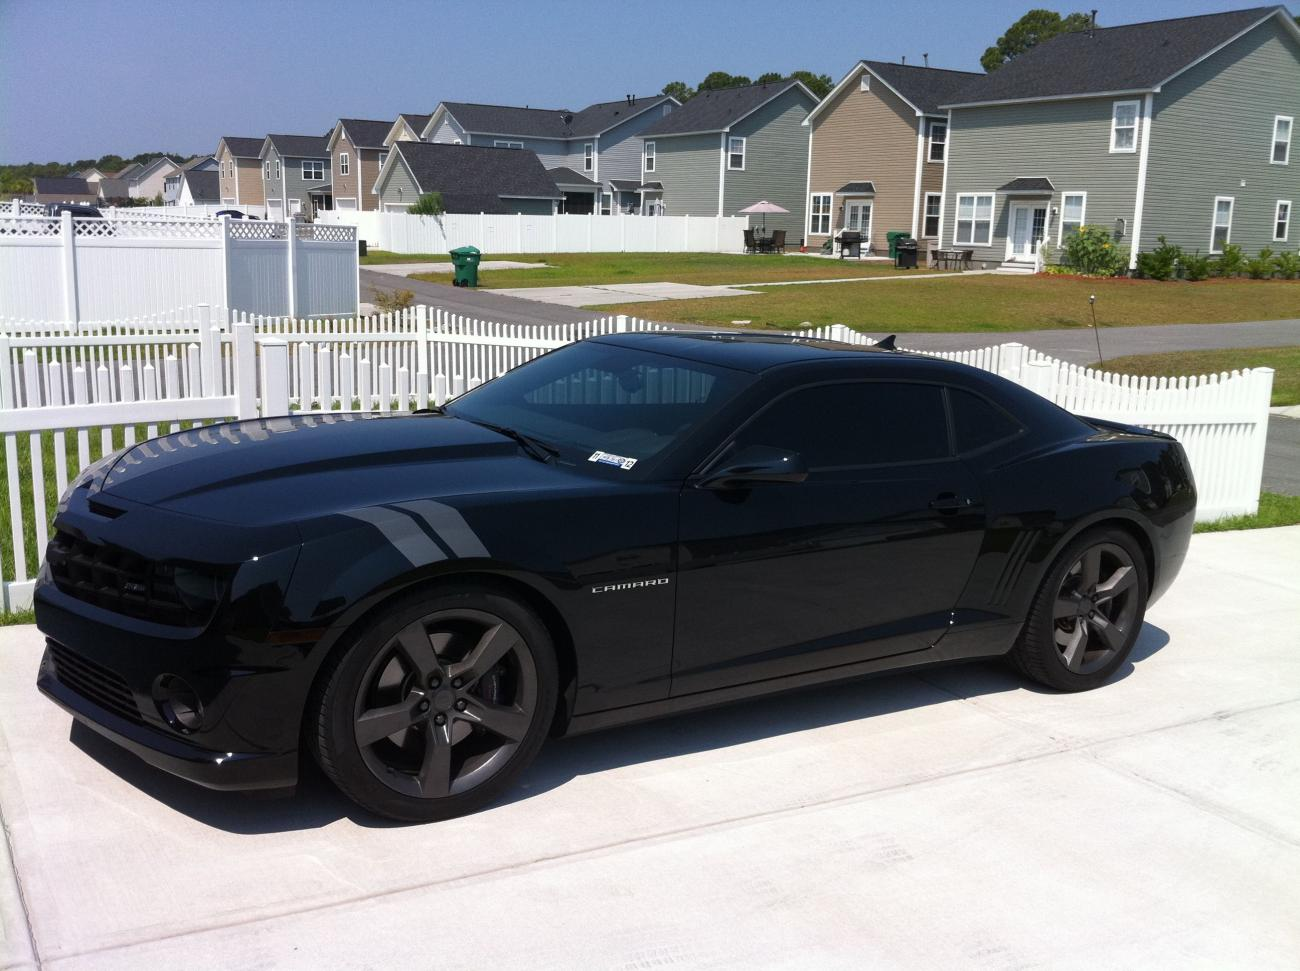 Does Anybody Have Any Good Ideas For 2017 Camaro Ss Rims Camaro5 Chevy Forum Zl1 And V6 Forums